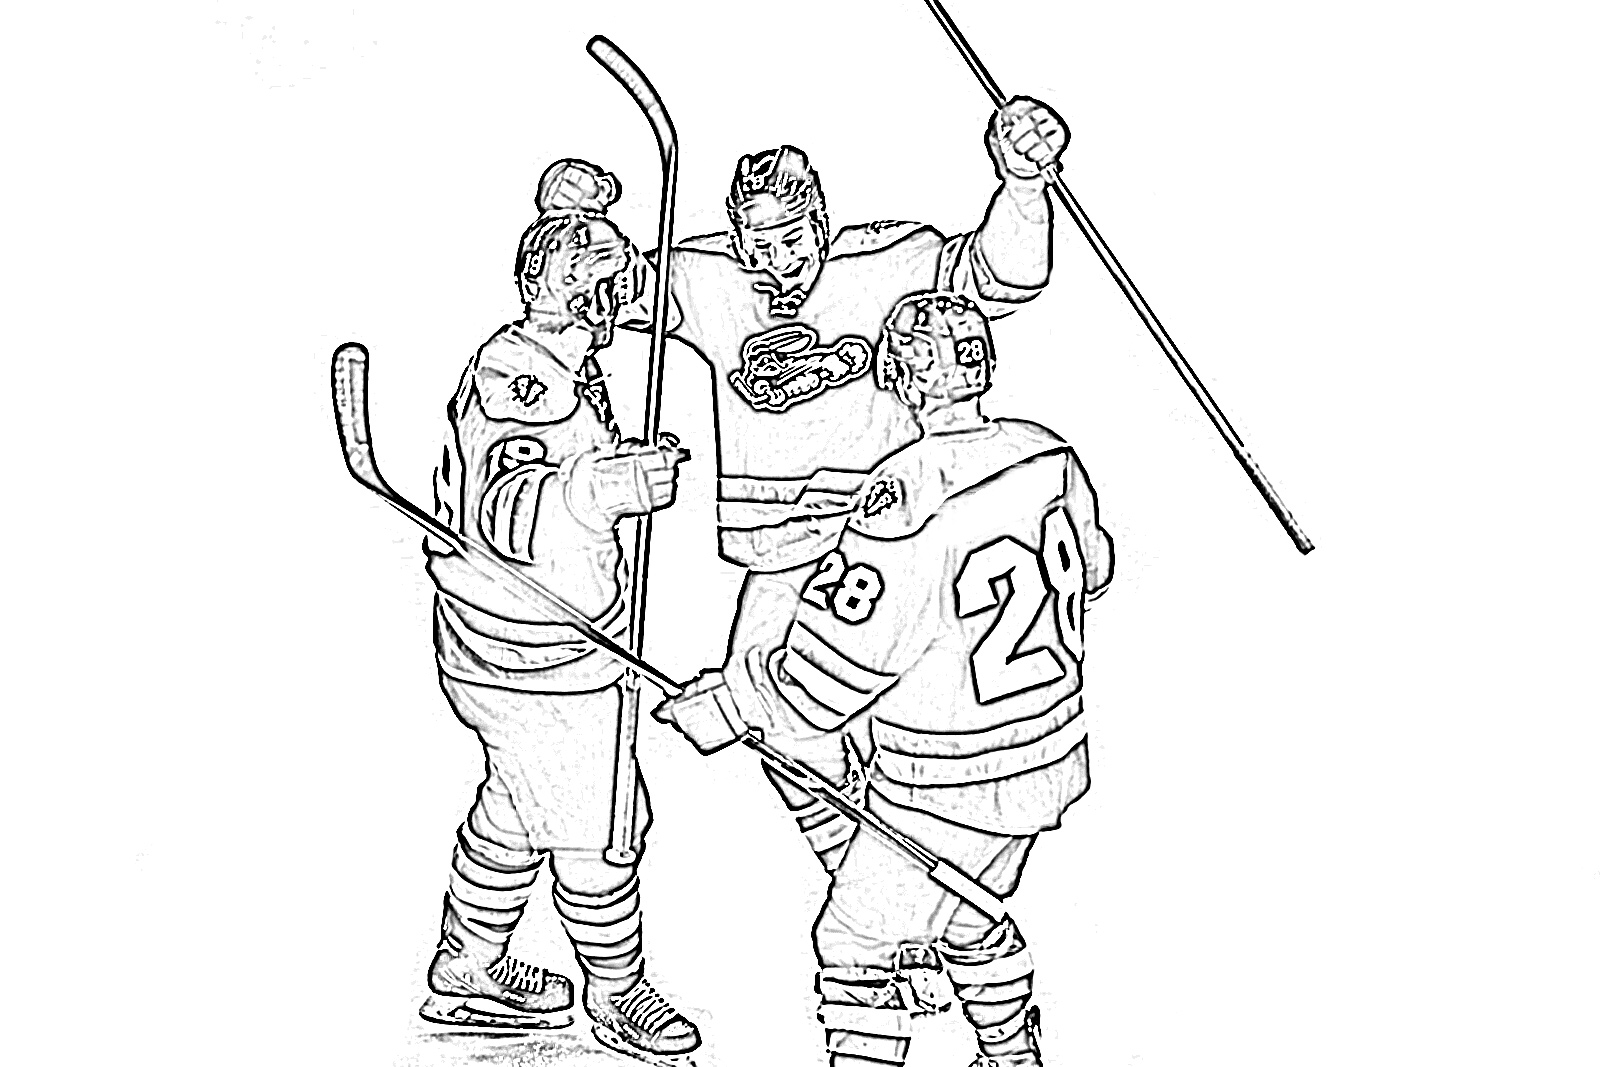 Hockey players celebrating coloring page